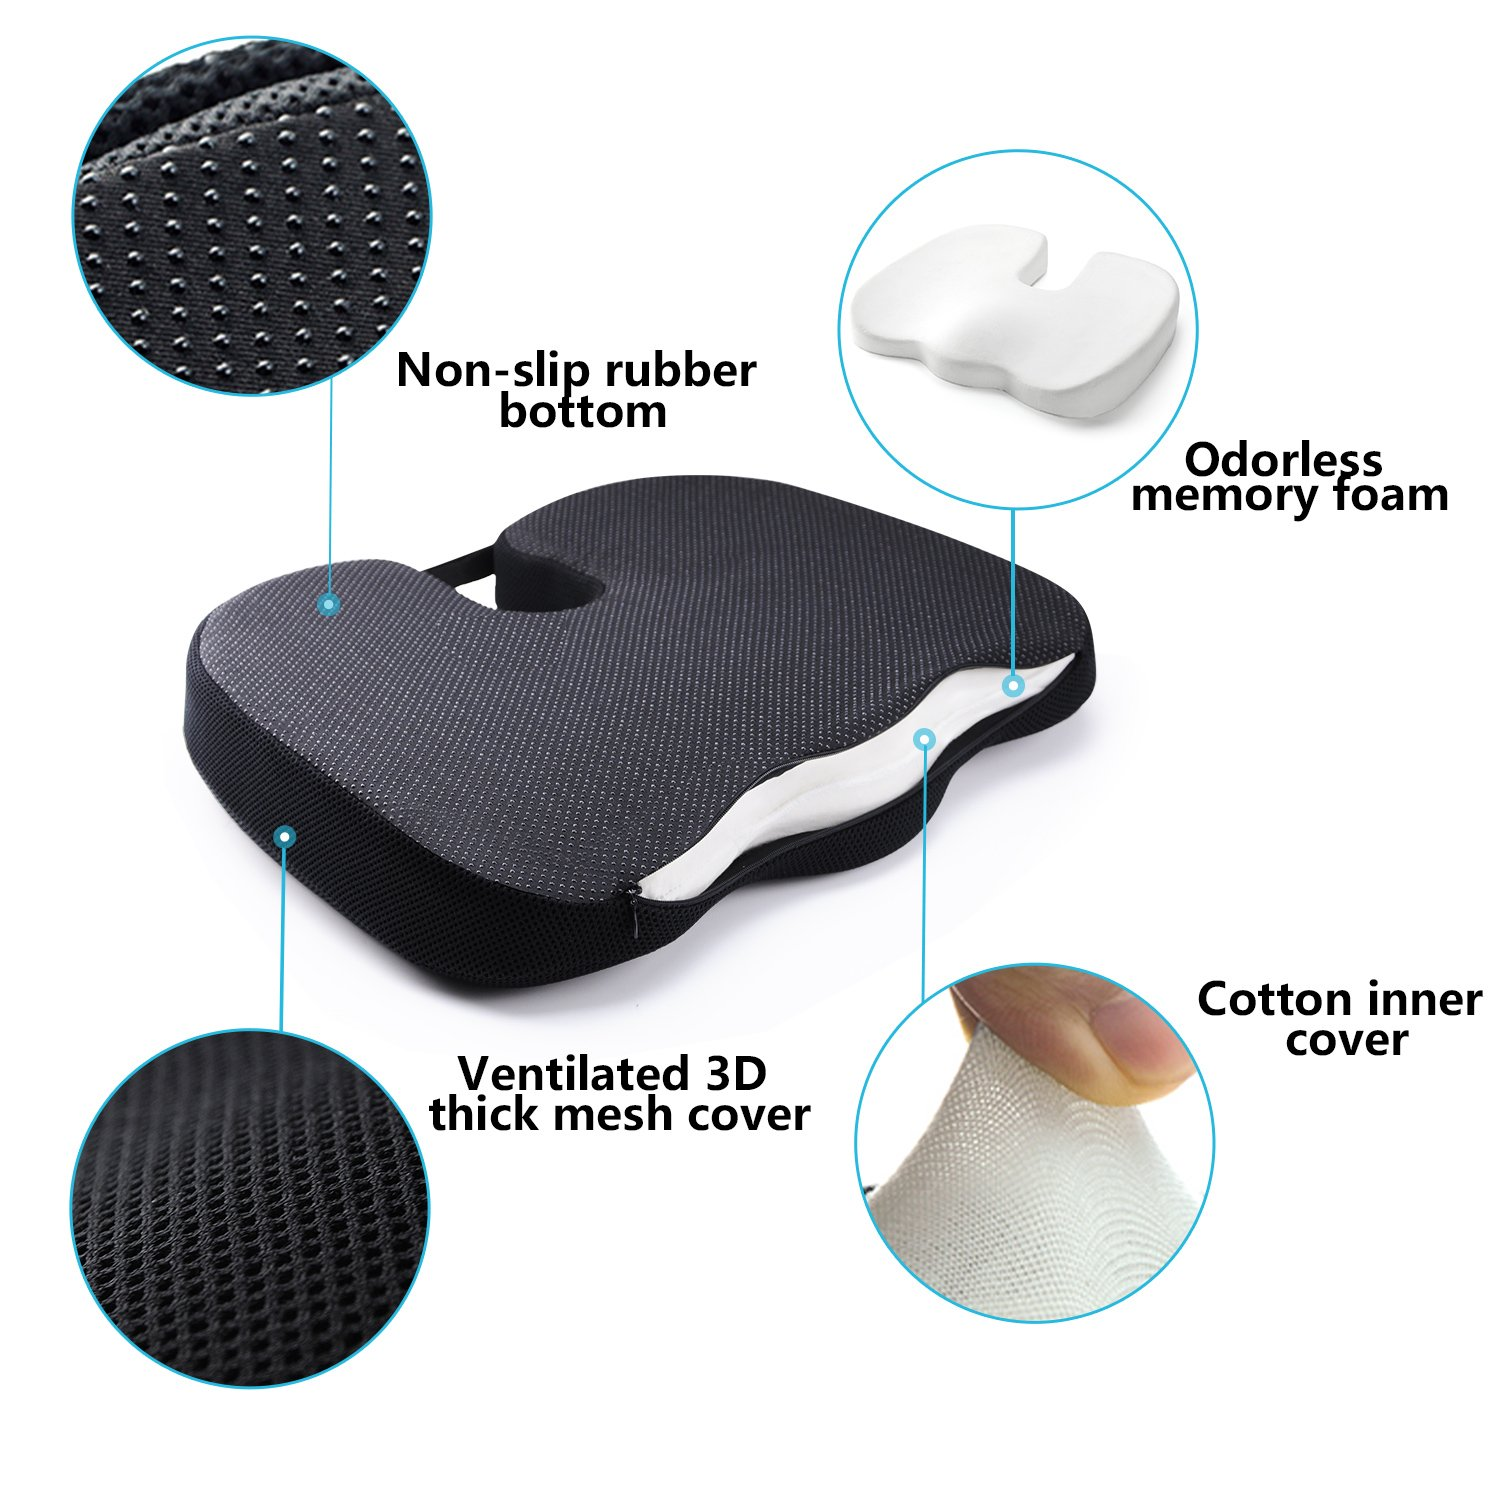 Dreamer Car Chair Cushions High-density Memory Foam Ventilate 3D Mesh Cover Designed for Hip Pain and Sciatica Relief ,Black